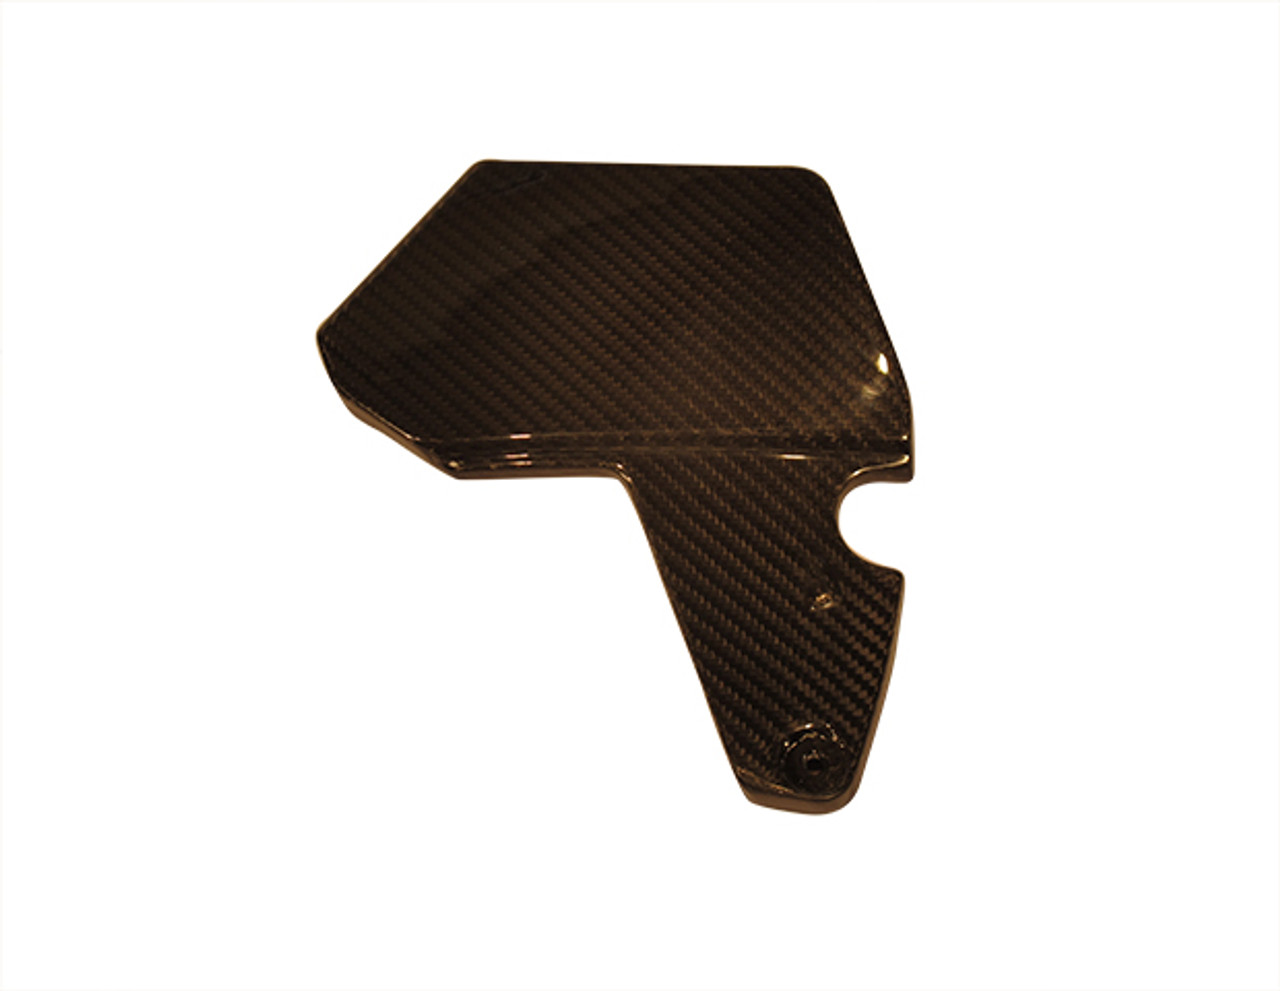 Battery Door Cover for Kawasaki ZX14/ZZR1400 06-11 in Glossy Plain Weave Carbon Fiber